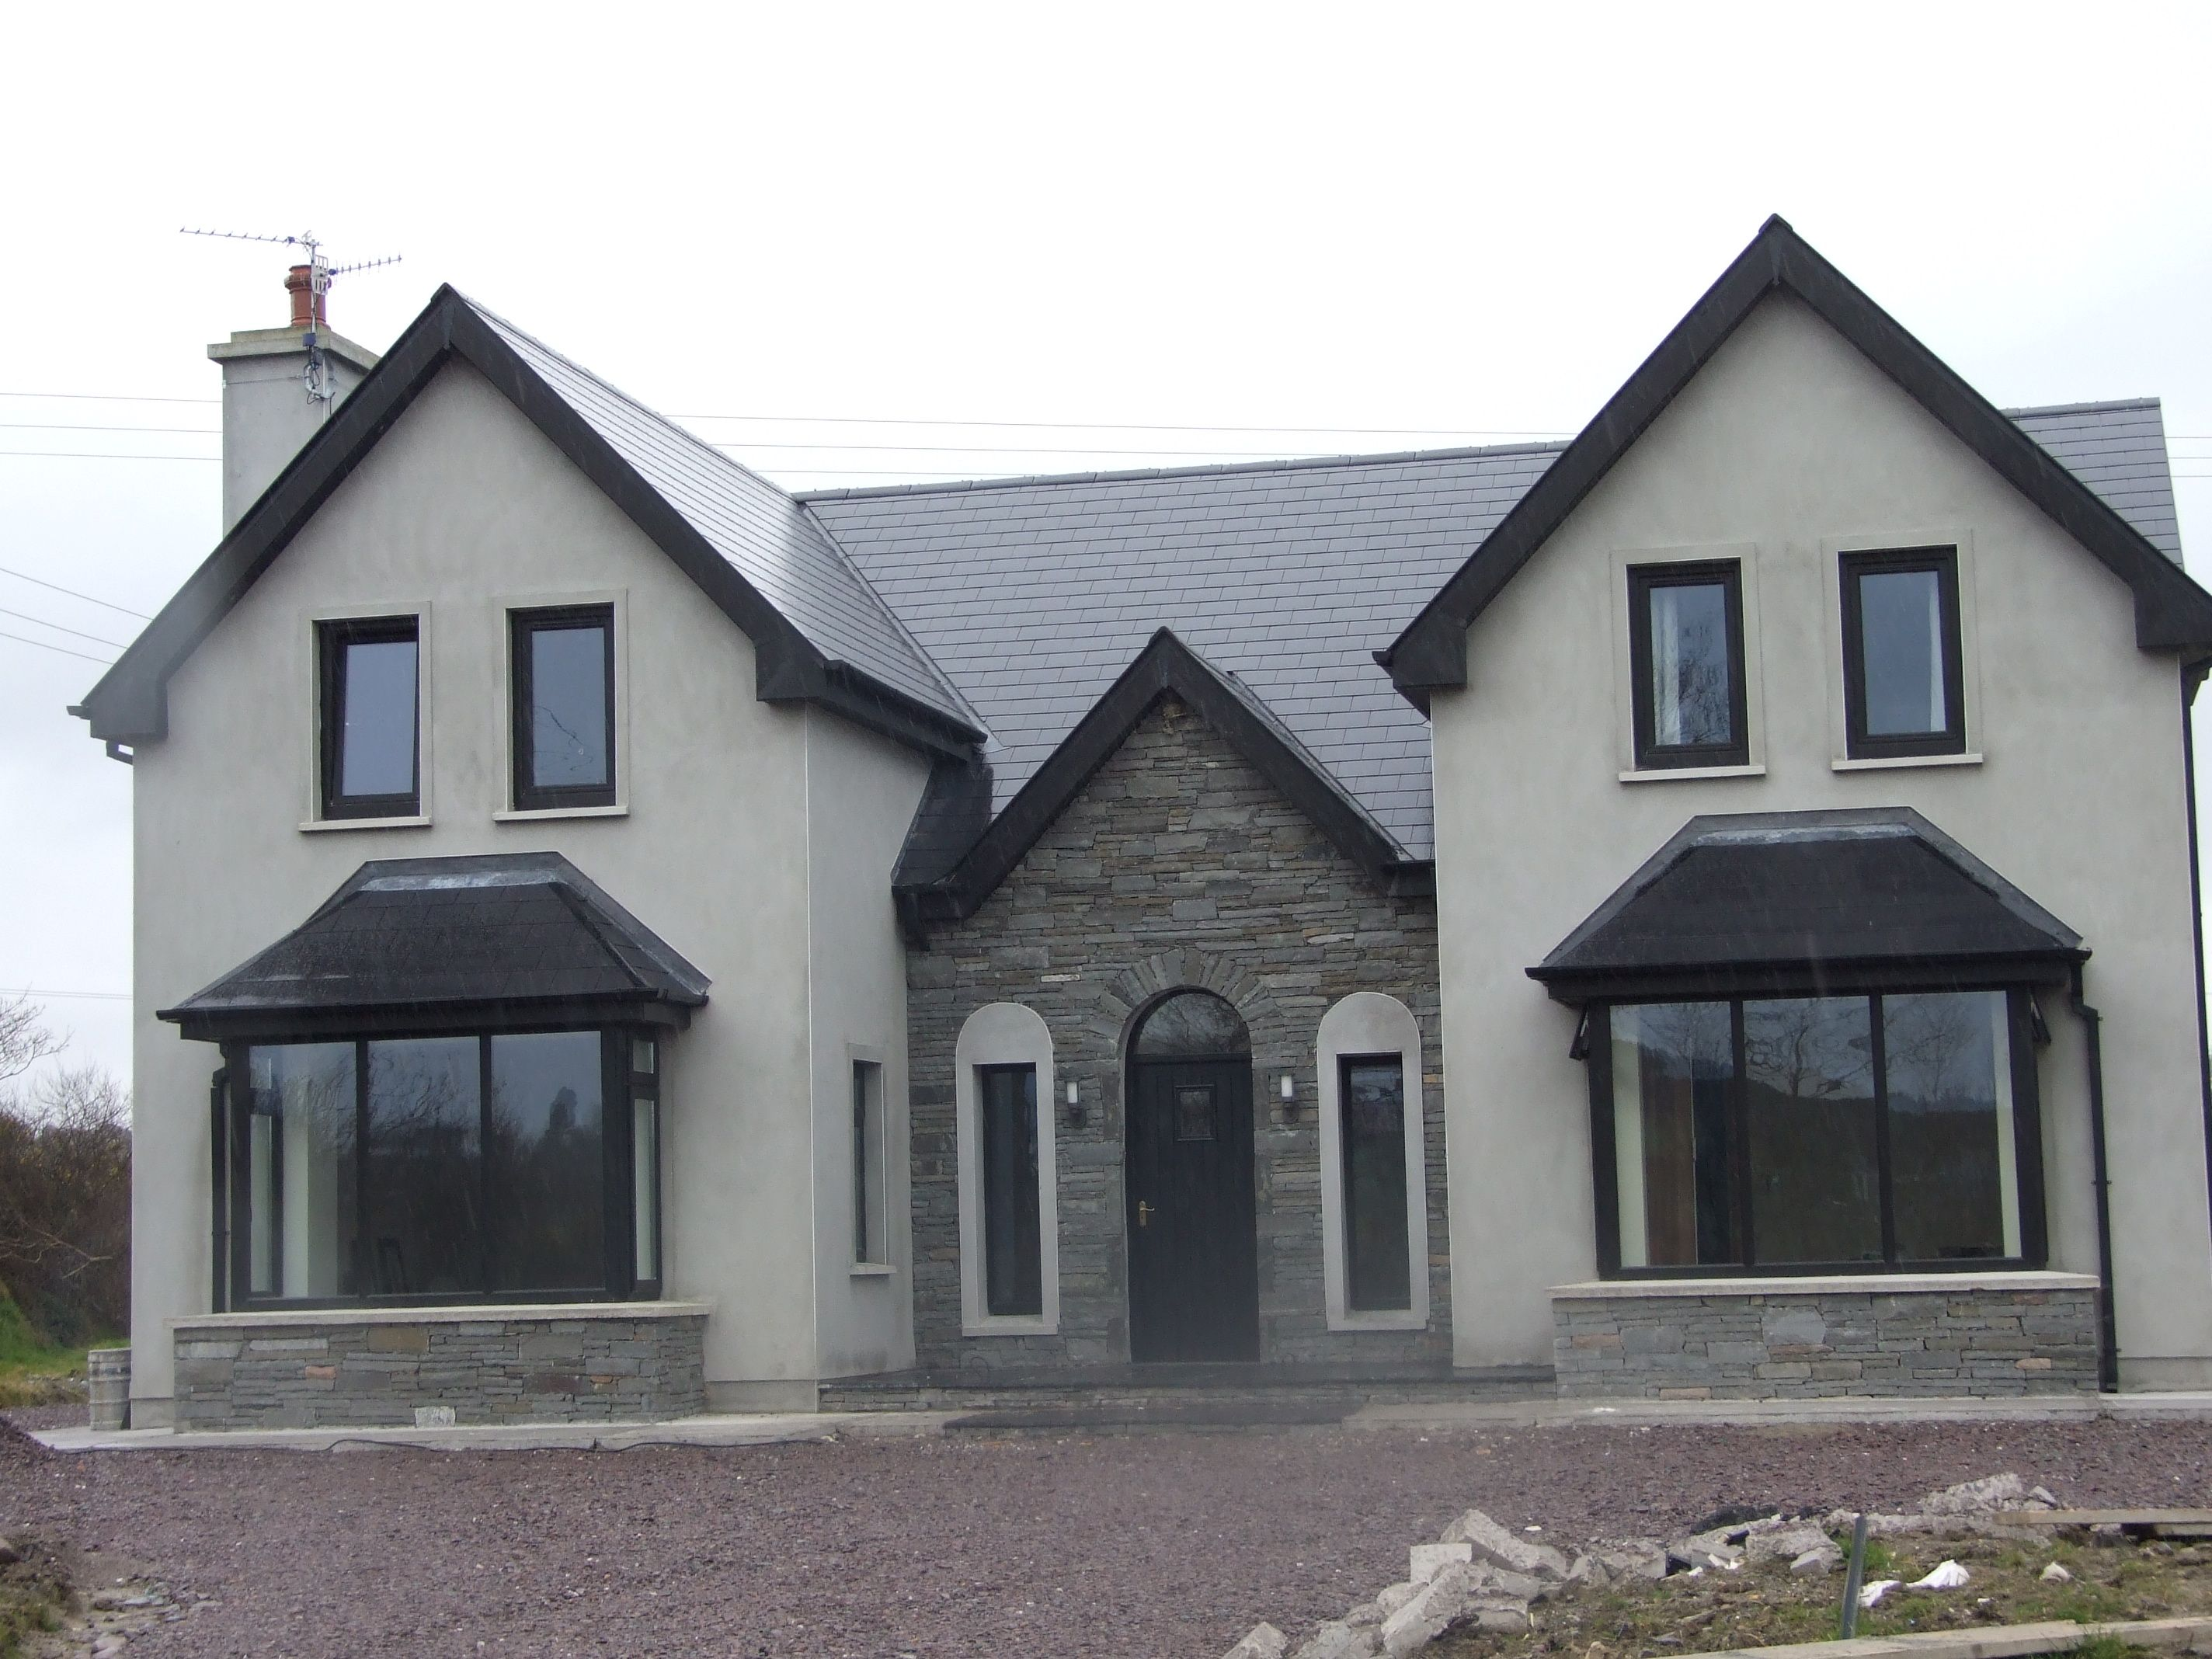 Almost Finished New Storey And A Half Residence In Kerry Ireland House Designs Ireland Dormer House House Designs Exterior